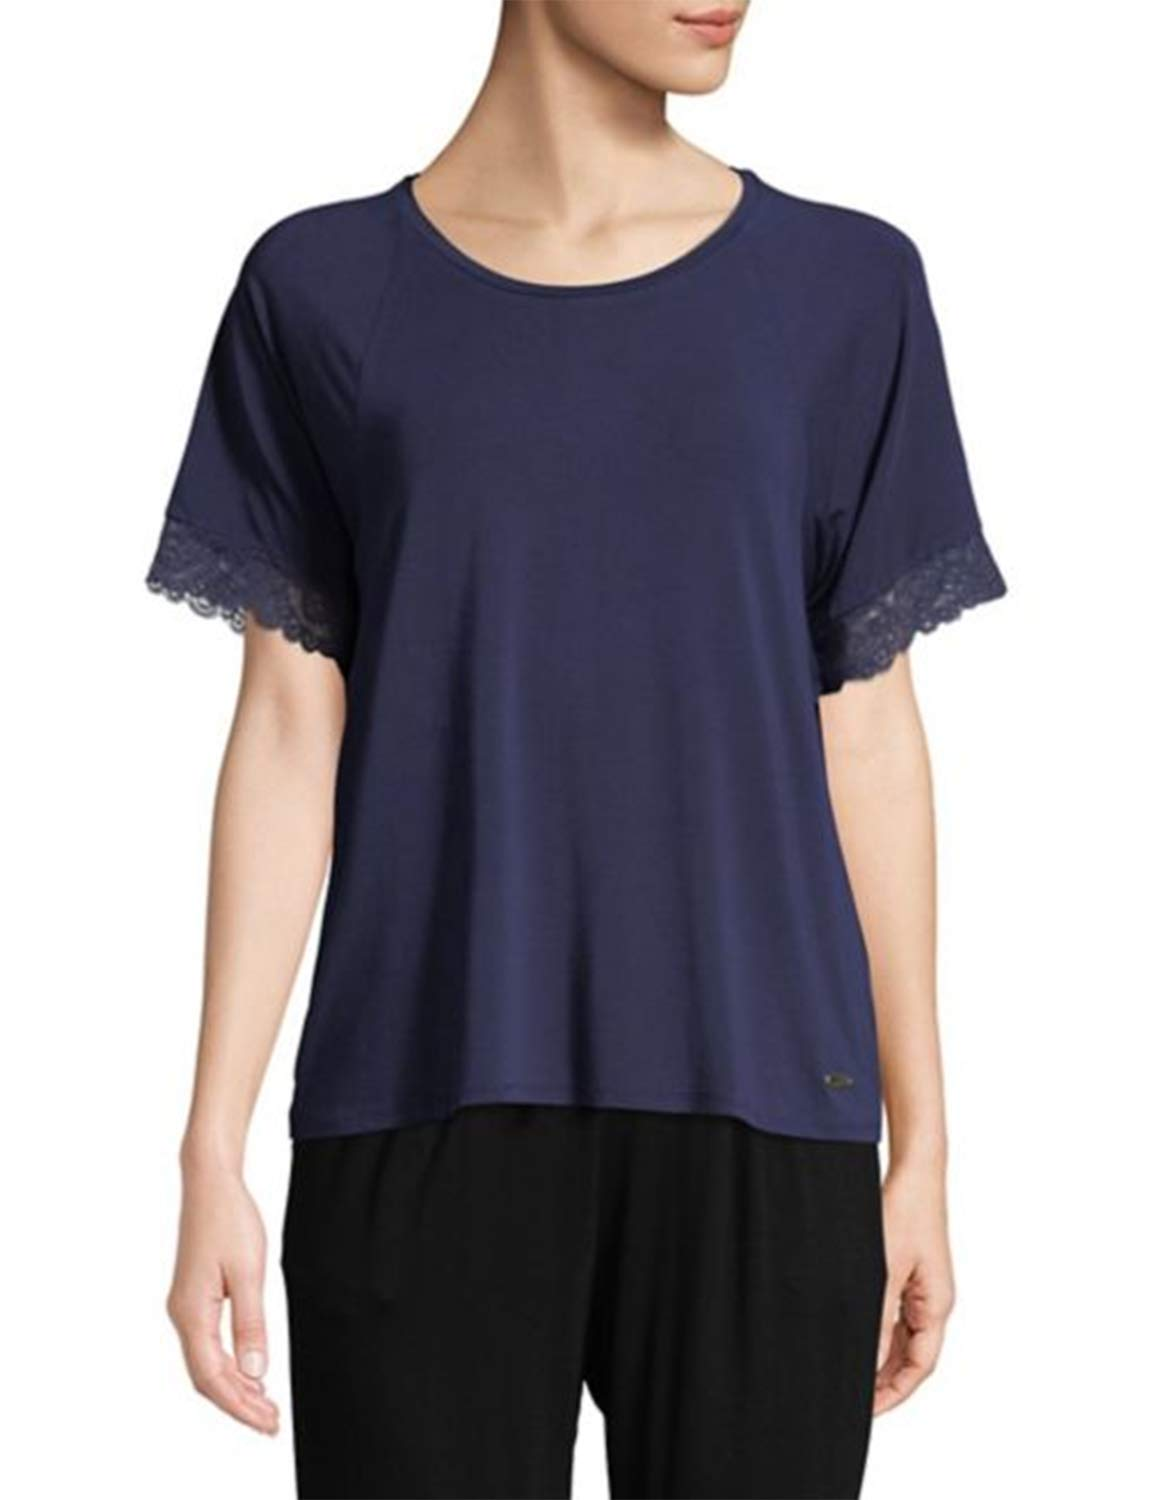 Blooming Jelly Womens Lace Stitching Sleeve Top Jumper Round Neck T Shirt Tee Shirts Blue